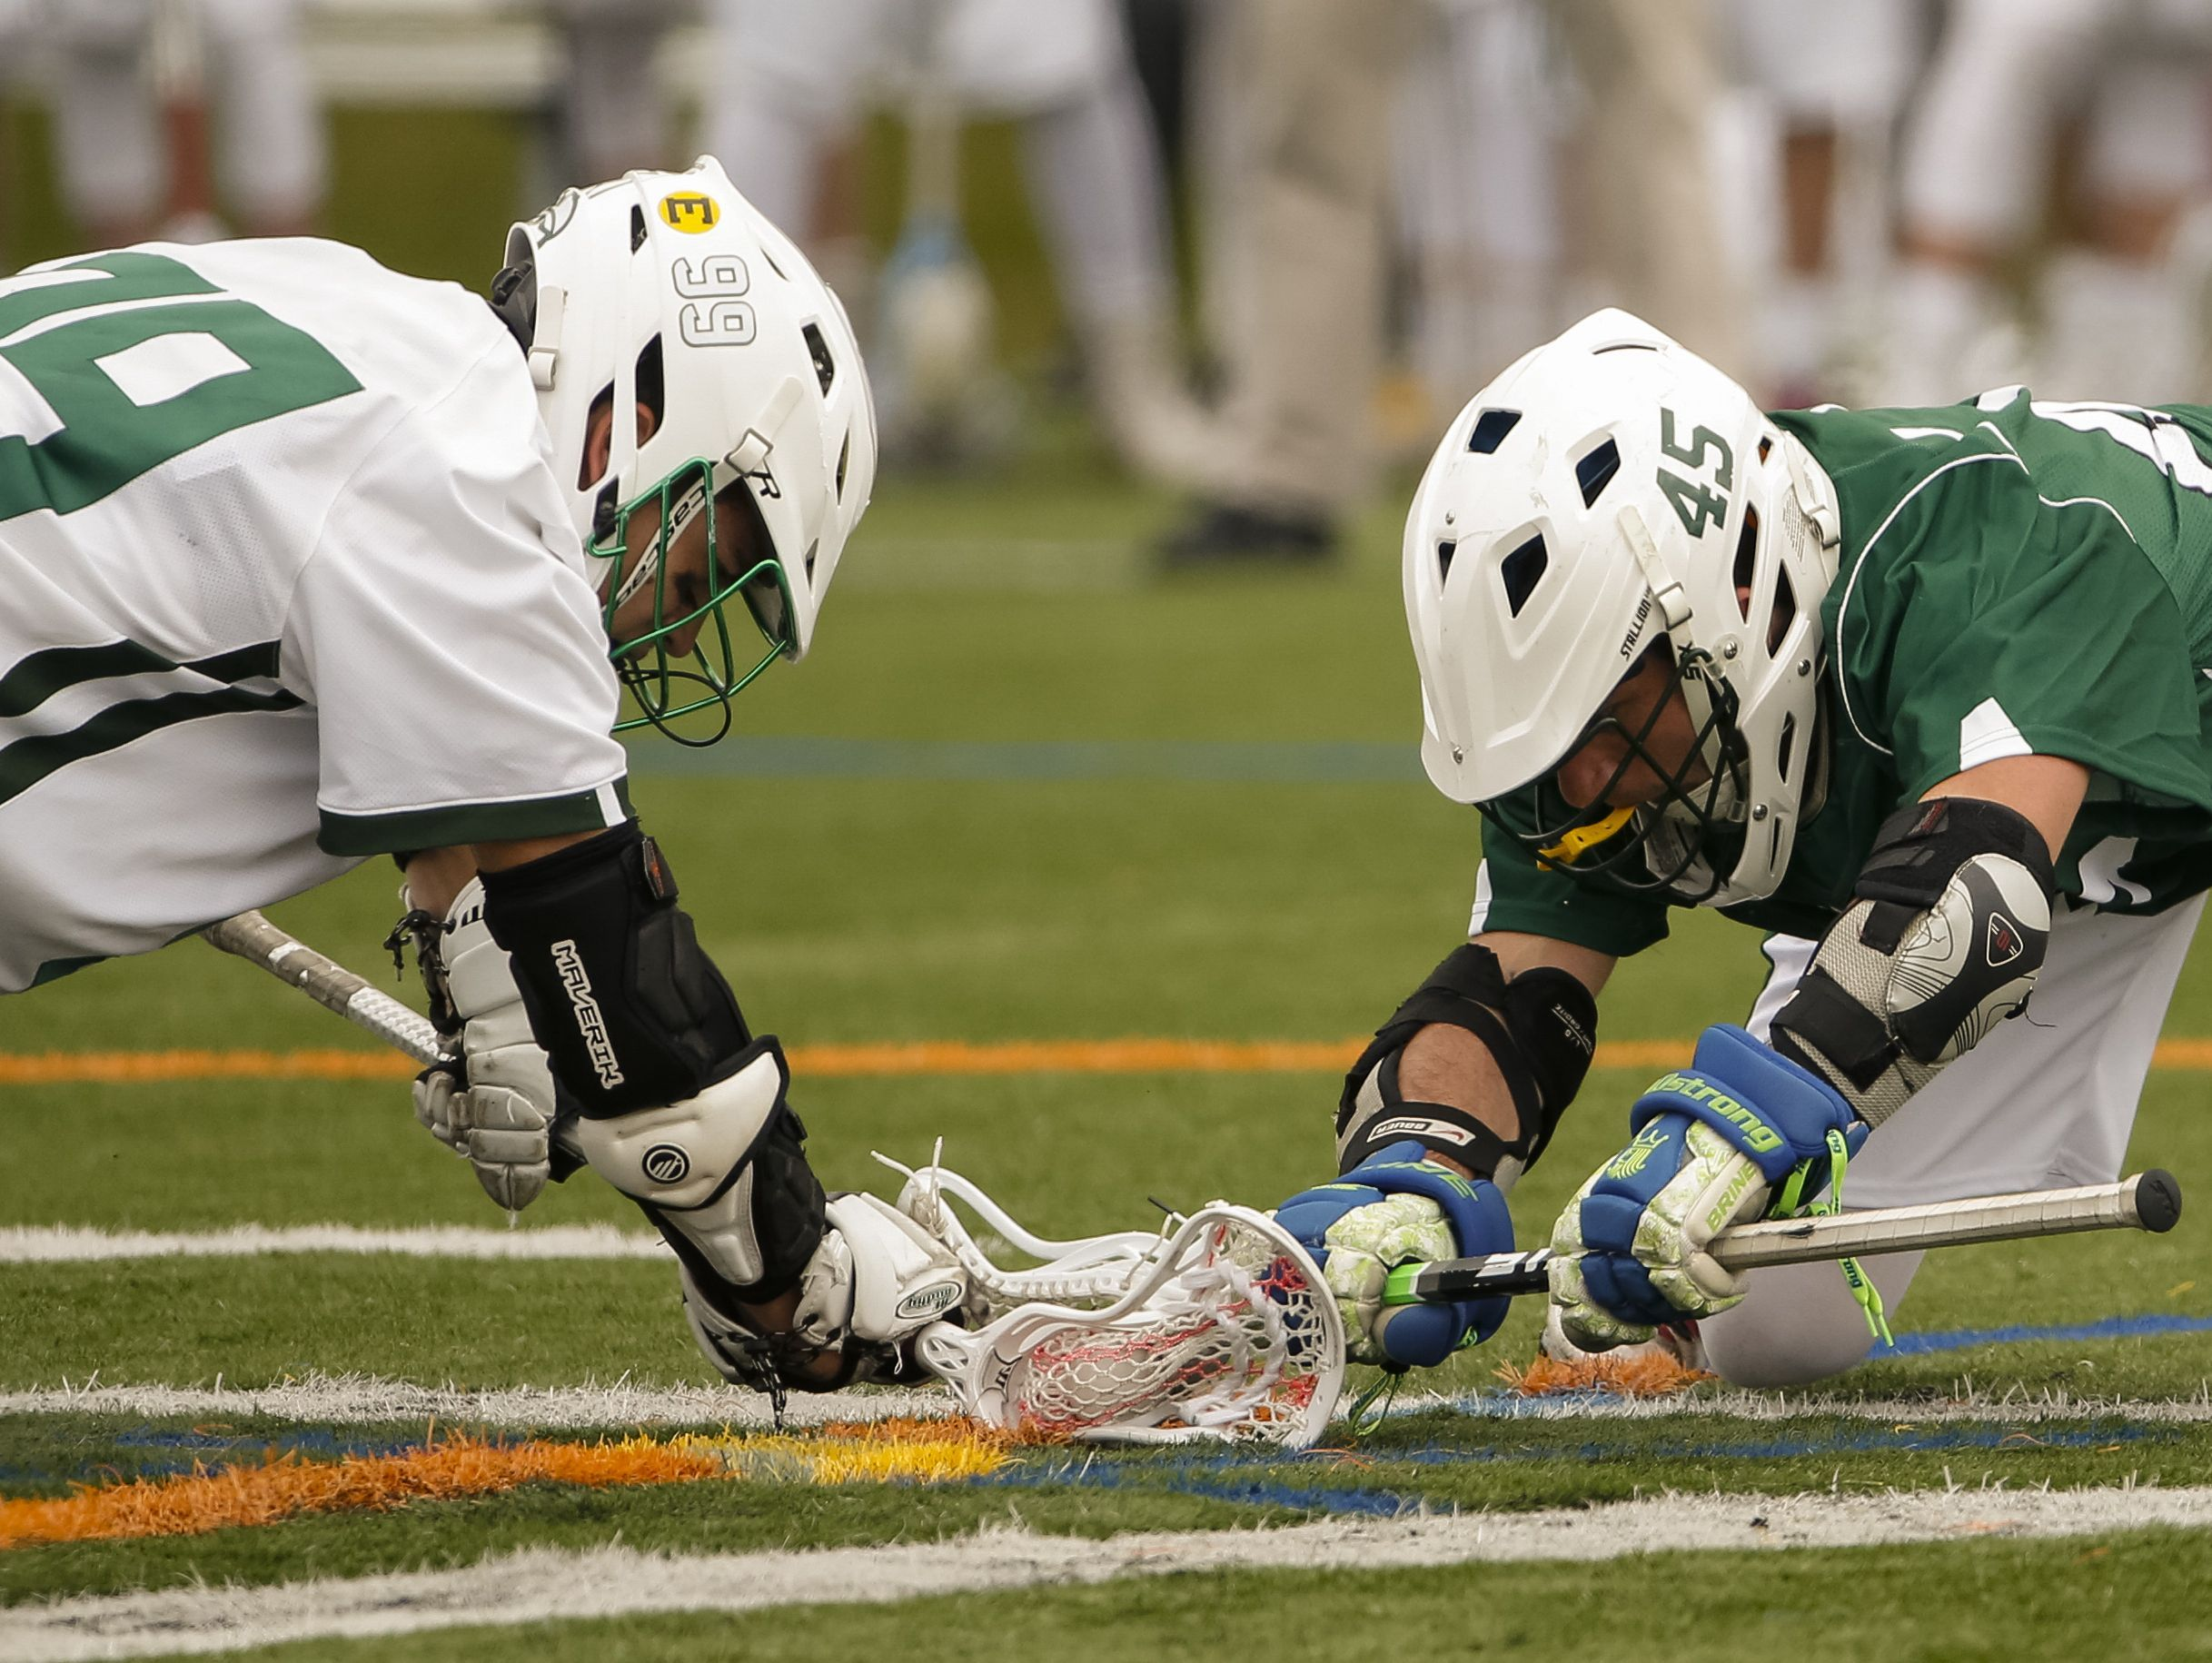 Archmere's Zane Fracek (left) squares off with Tower Hill's Ben Katz in the second half of Archmere's 12-7 win Saturday.